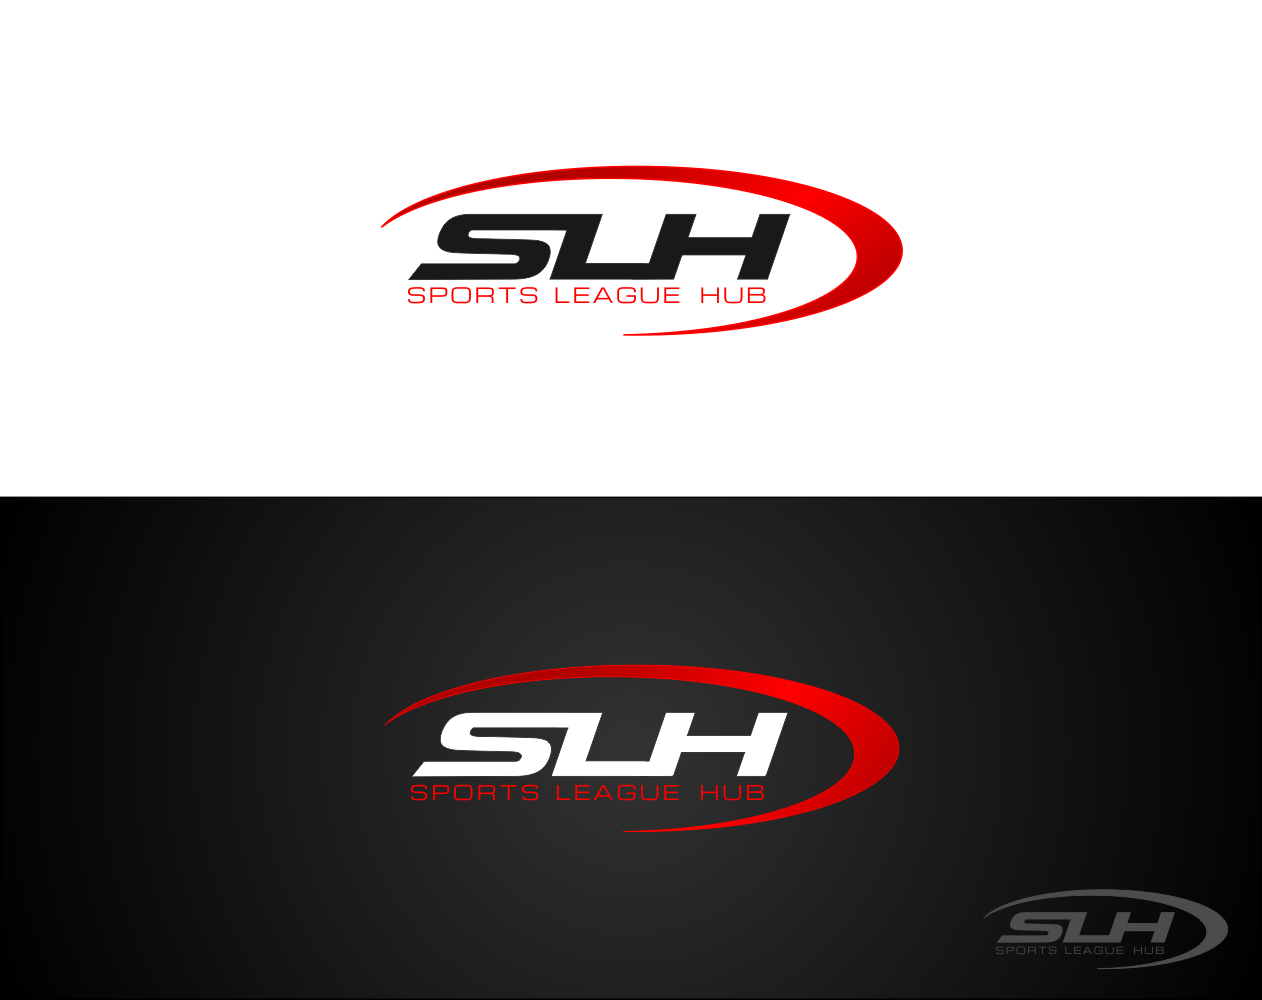 New logo wanted for Sports League Hub